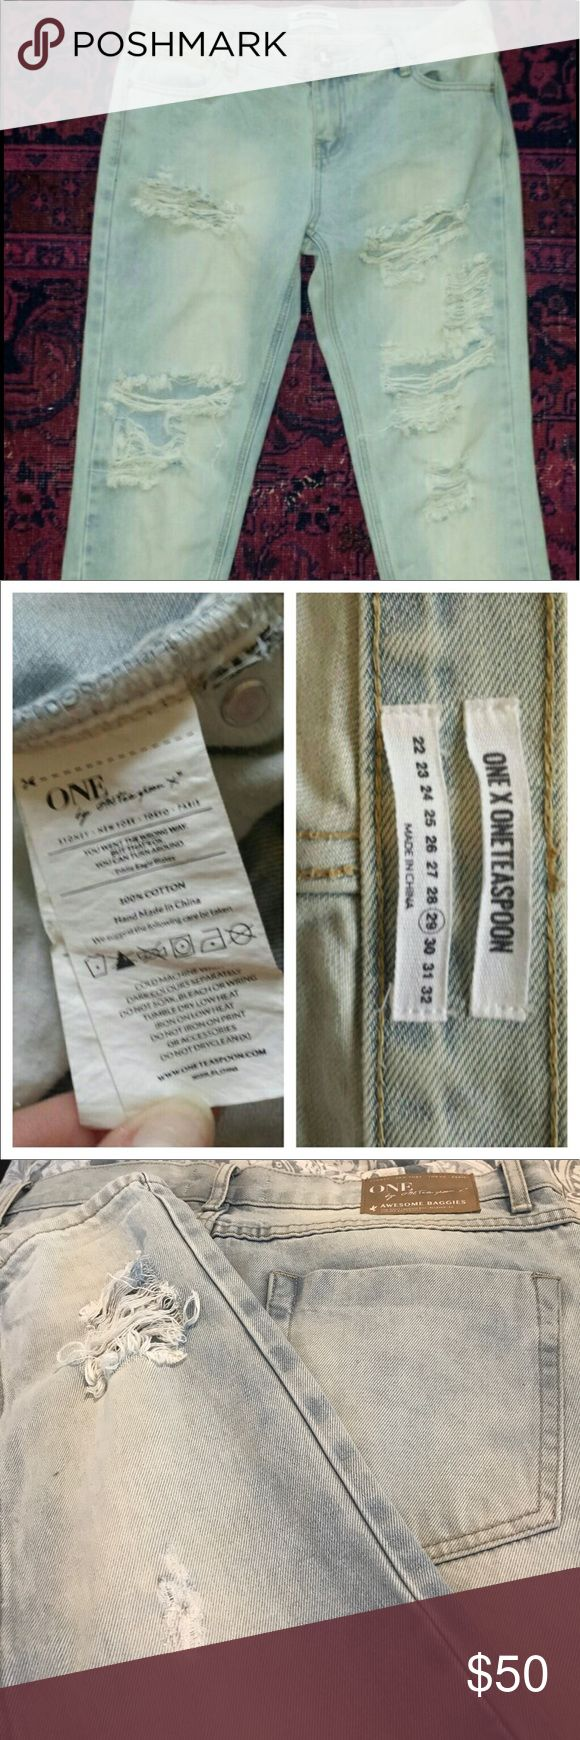 Re-Posh CUTE Size 29 One Teaspoon Awesome Baggies Low Waist/ Medium Rise/ Relaxed Leg/ Tapered Rolled Cuff/ Or You Can Unroll for straight No Cuff Fit. Super Cute. Just a little too Big for me! My loss can be you getting to own these Bad Azz Jeans!!! One Teaspoon Jeans